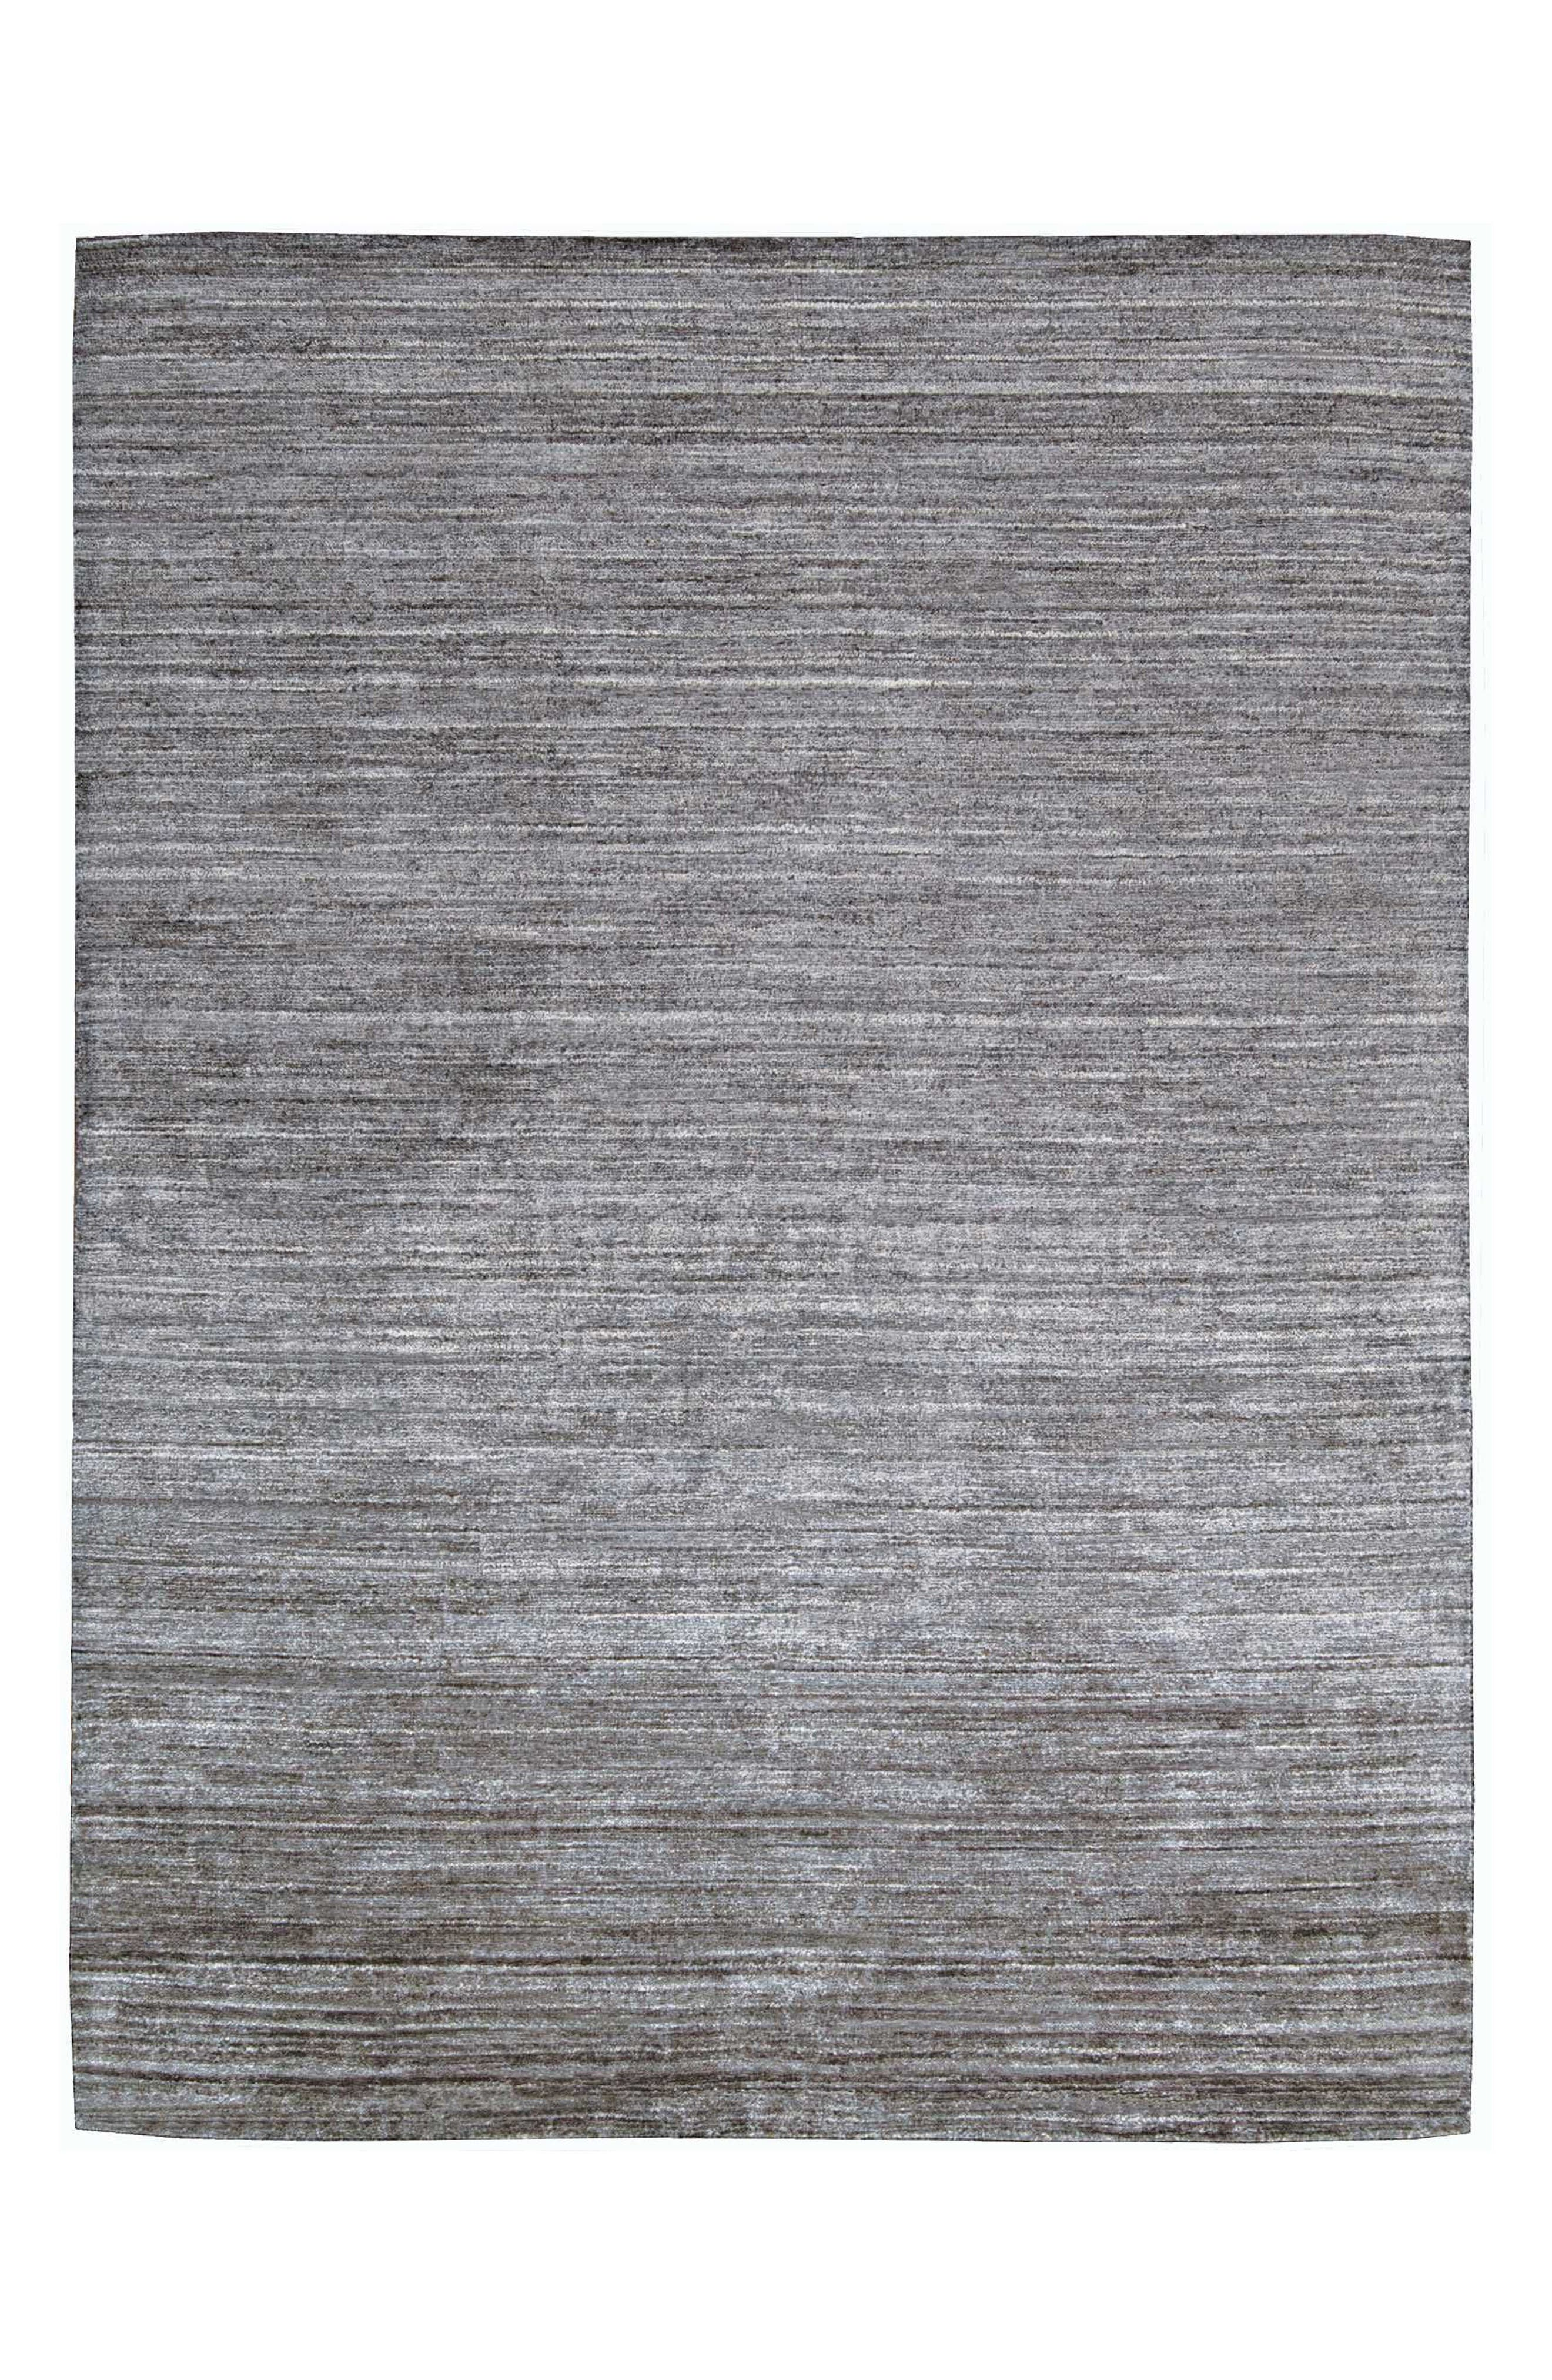 Home Shimmer Mineral Area Rug,                         Main,                         color, 020